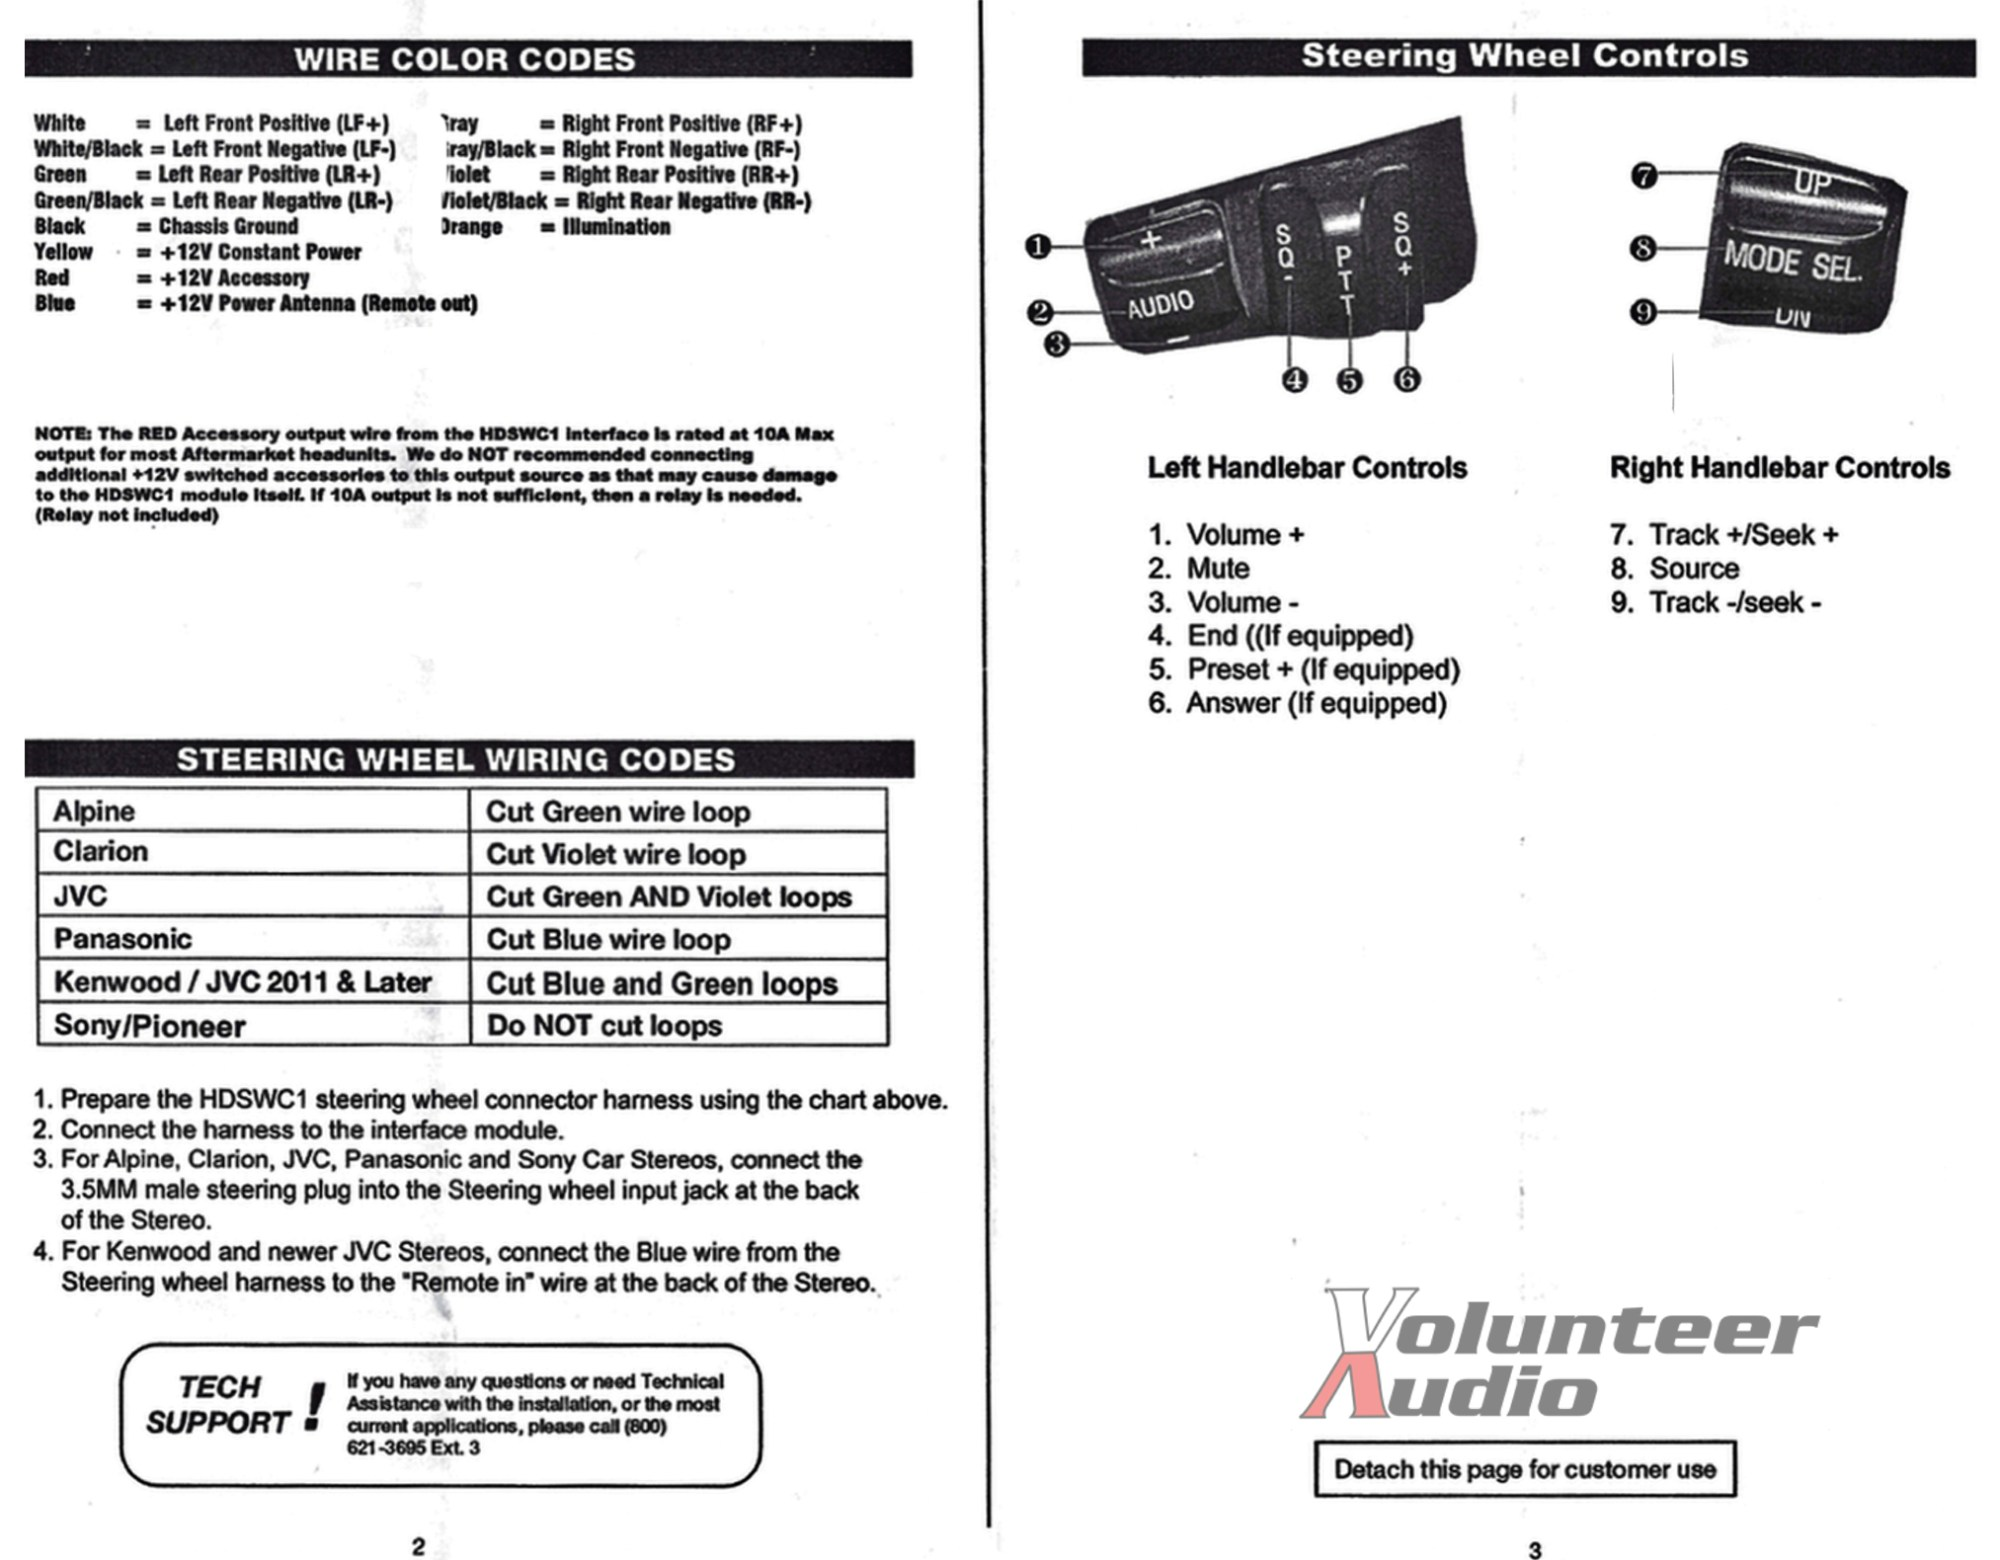 hight resolution of hand controlls harley wiring harness diagram